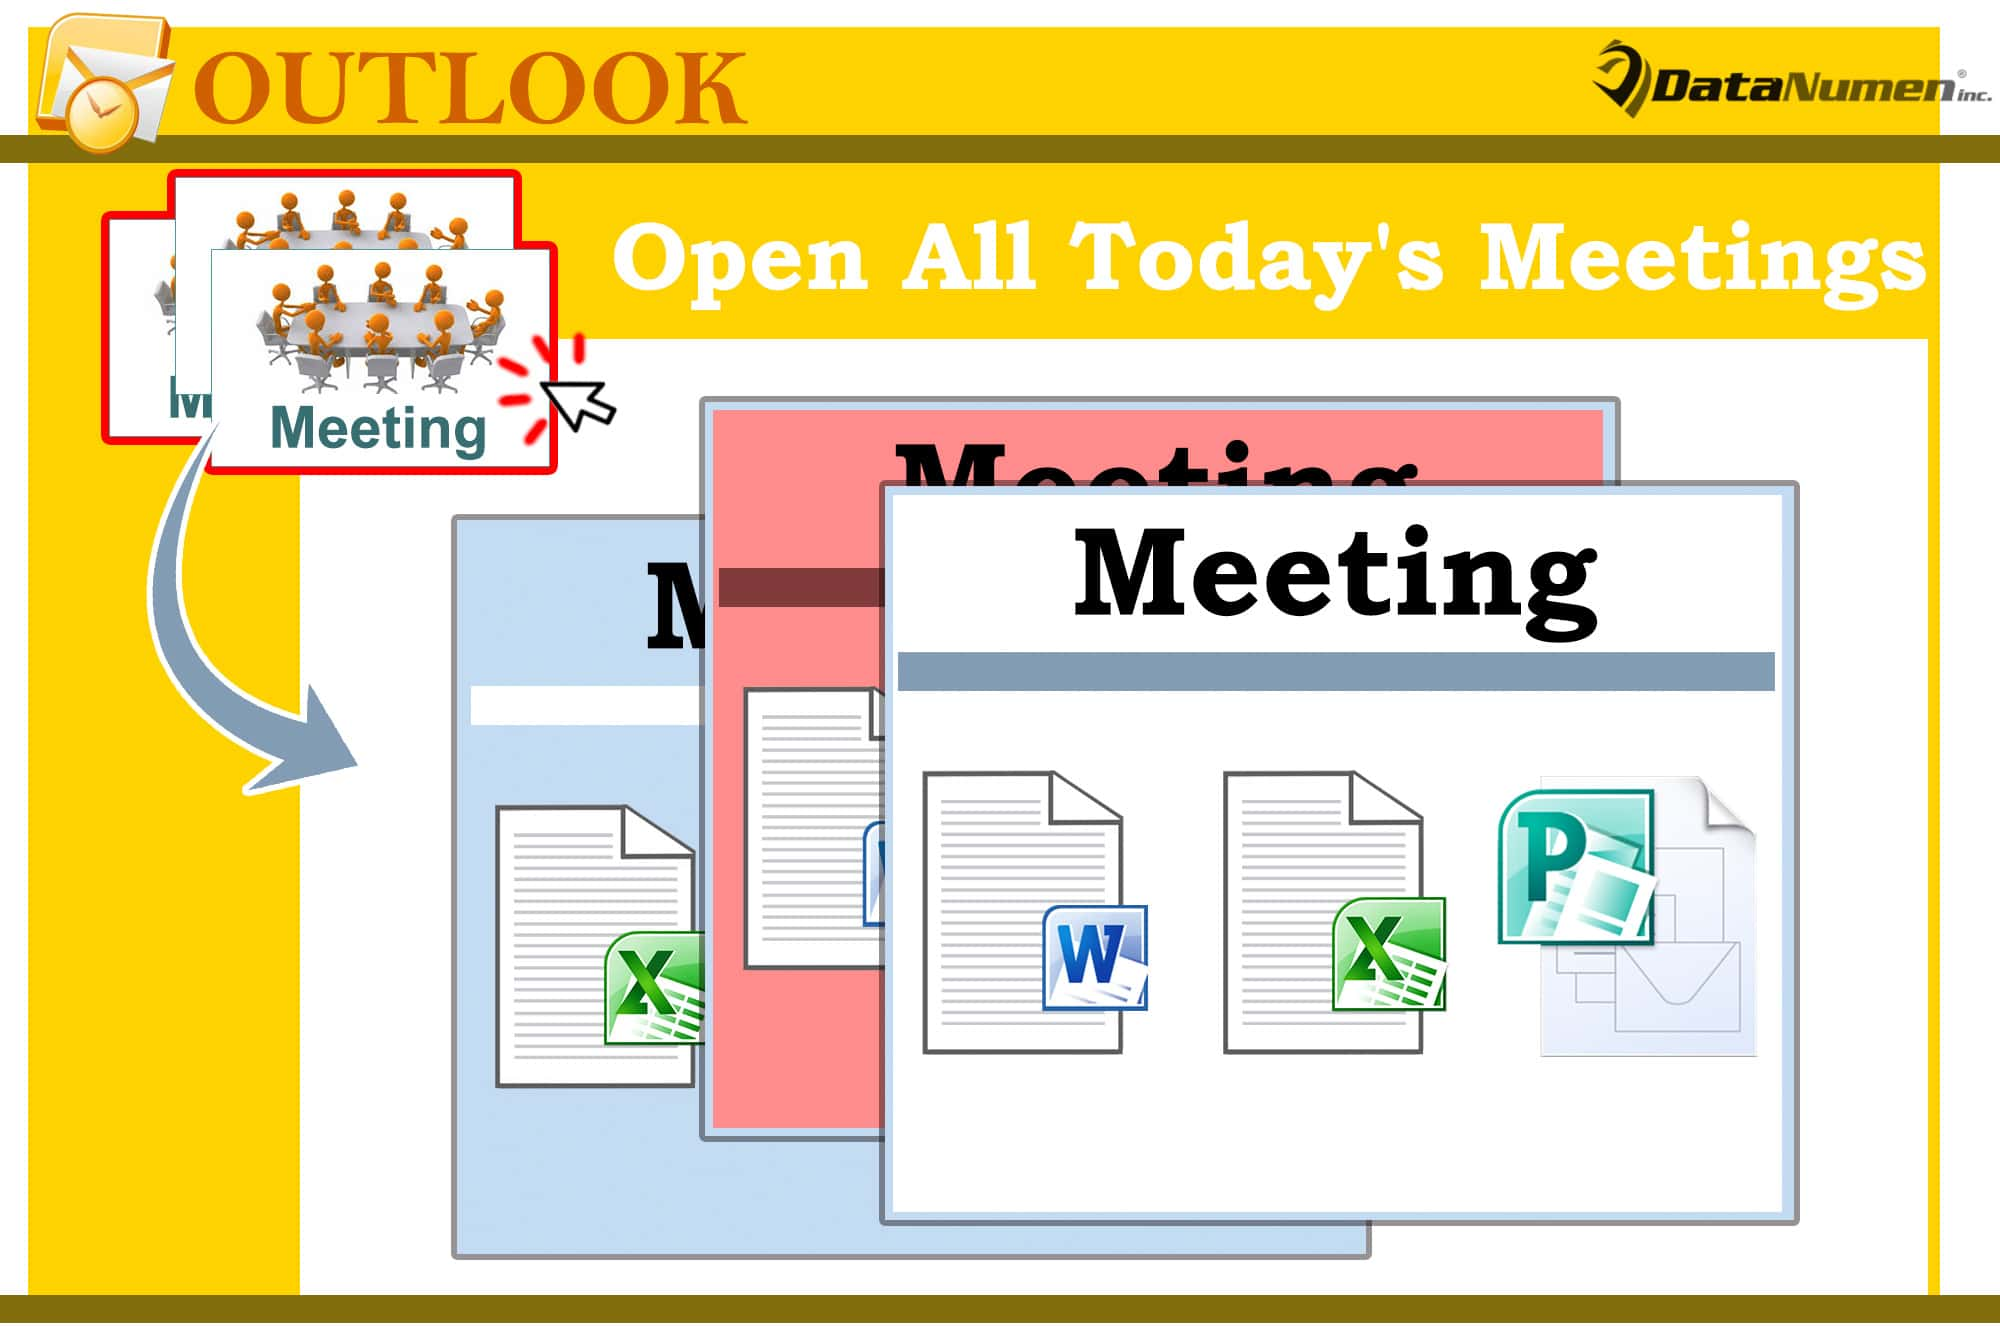 Batch Open All Today's Meetings in Your Outlook